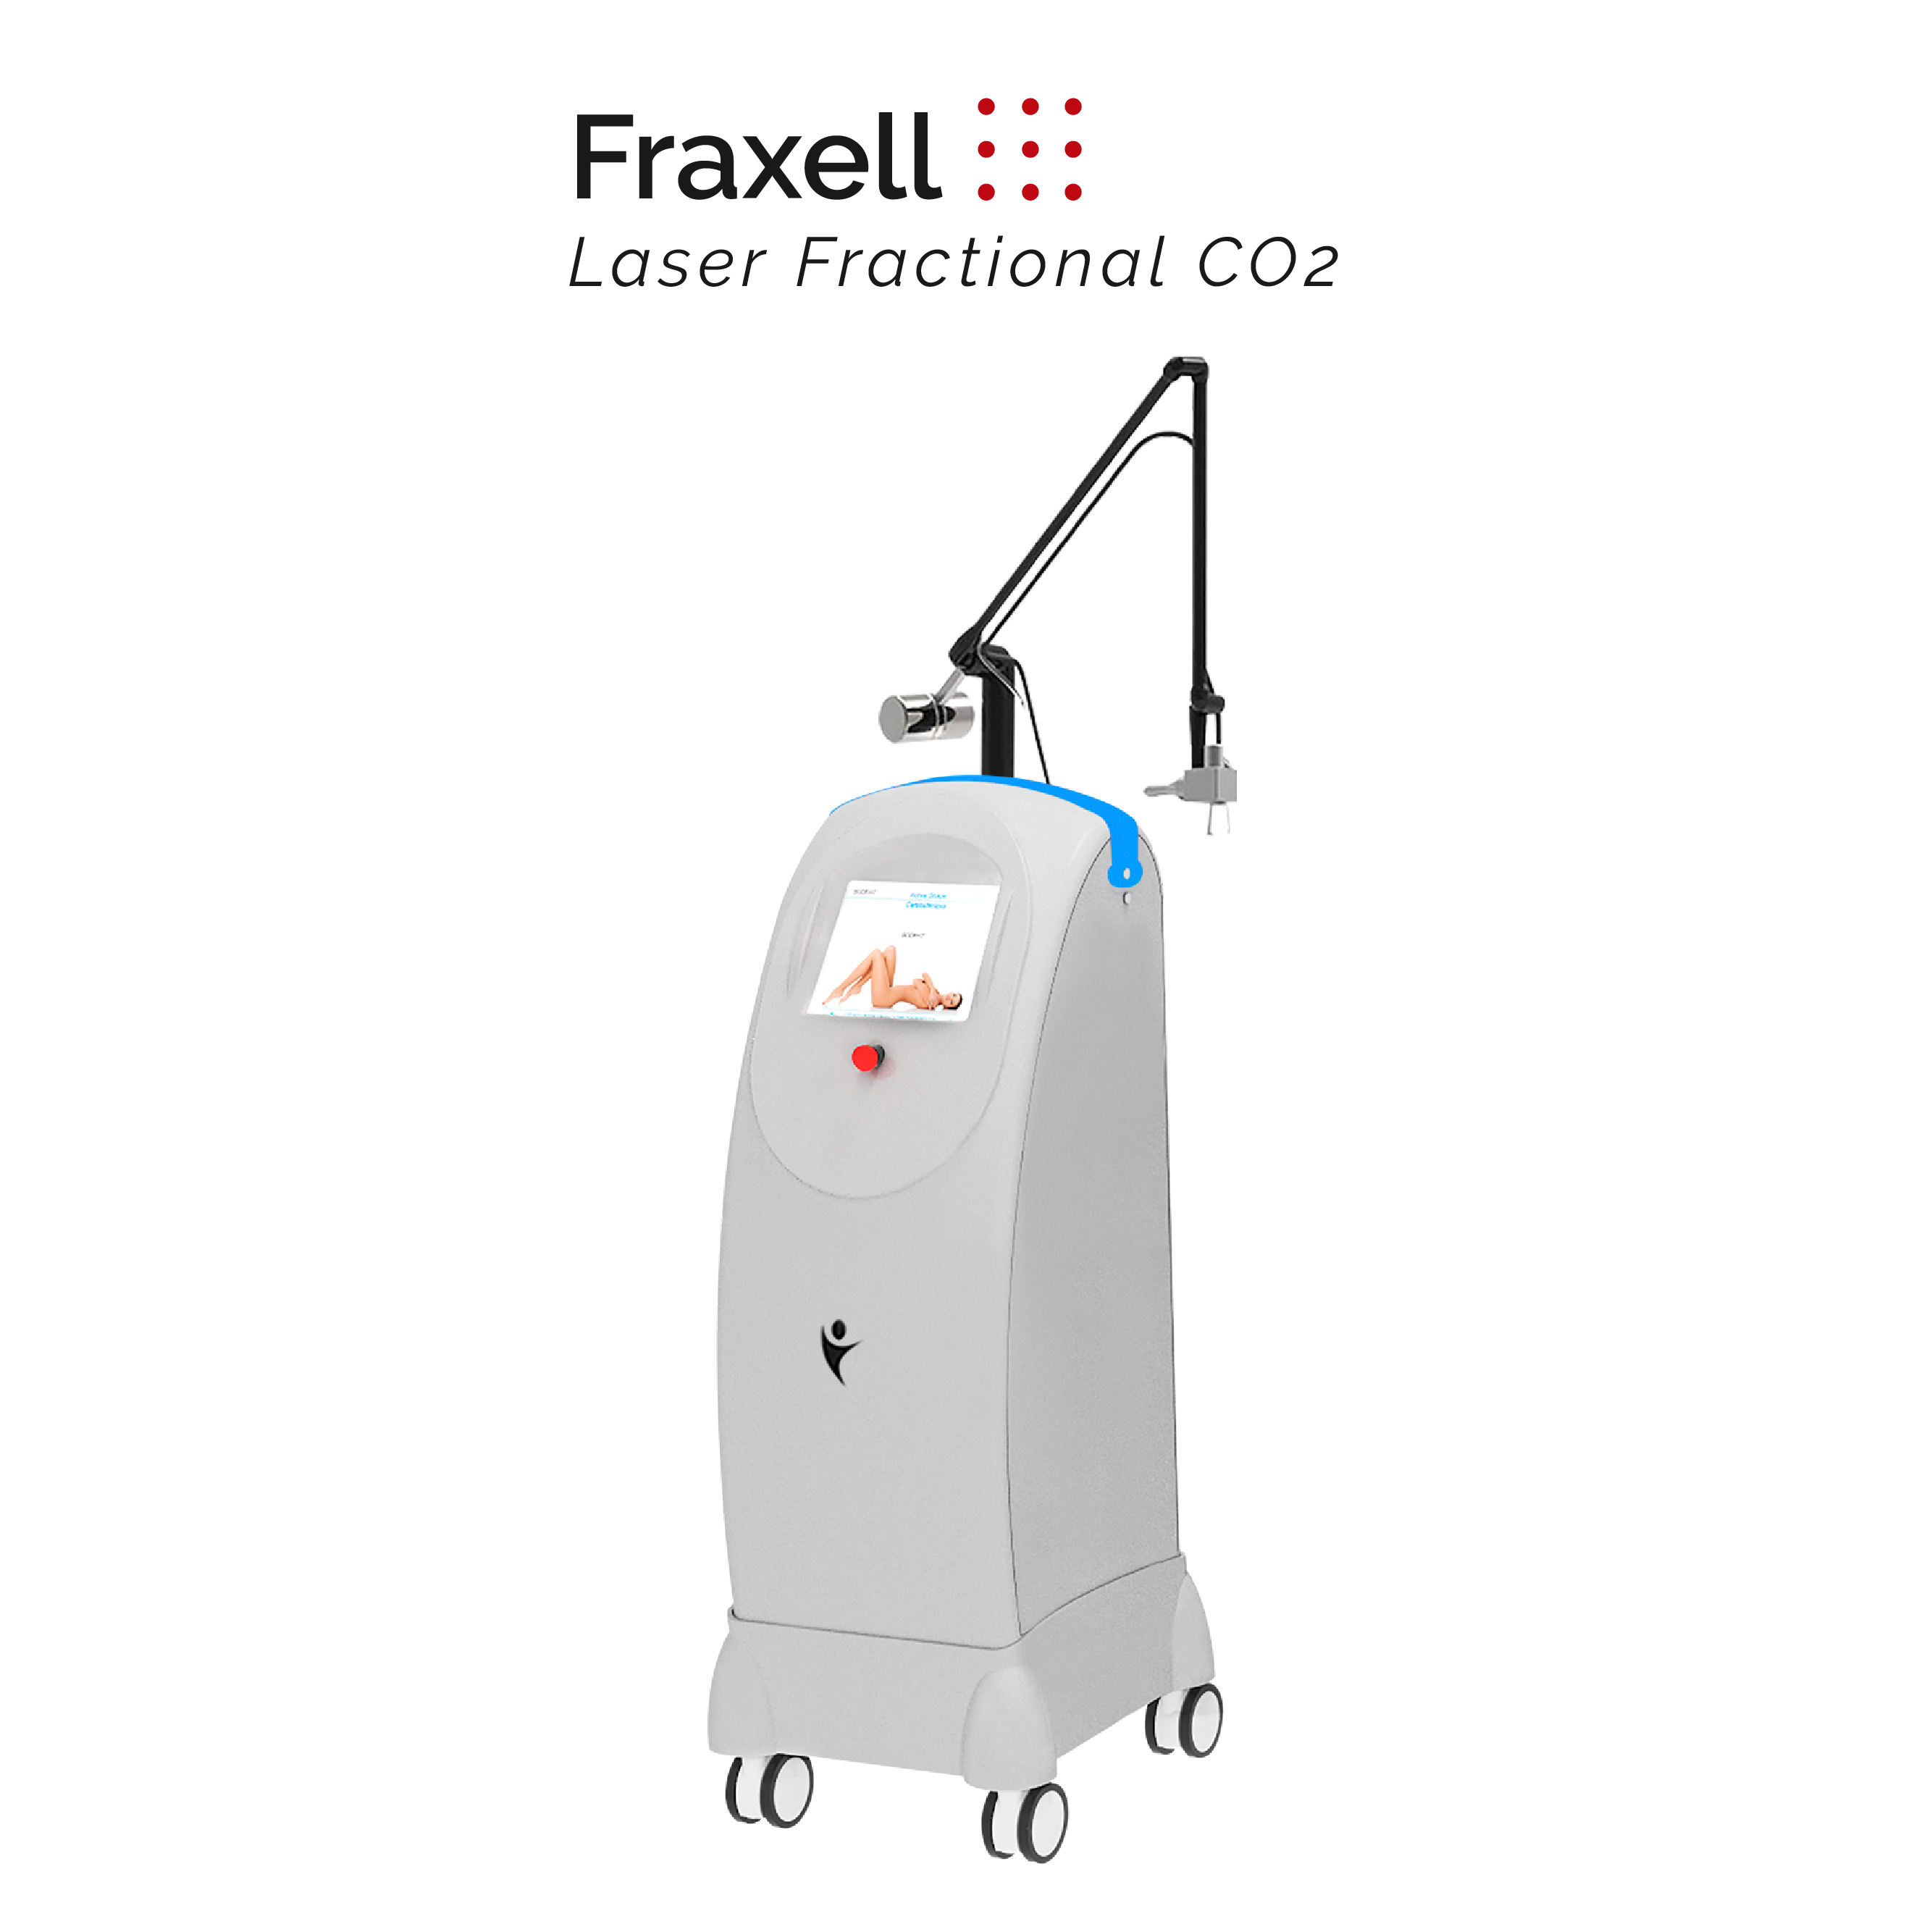 Co2 Laser-Attrezzature di Bellezza-Macchina Professionale